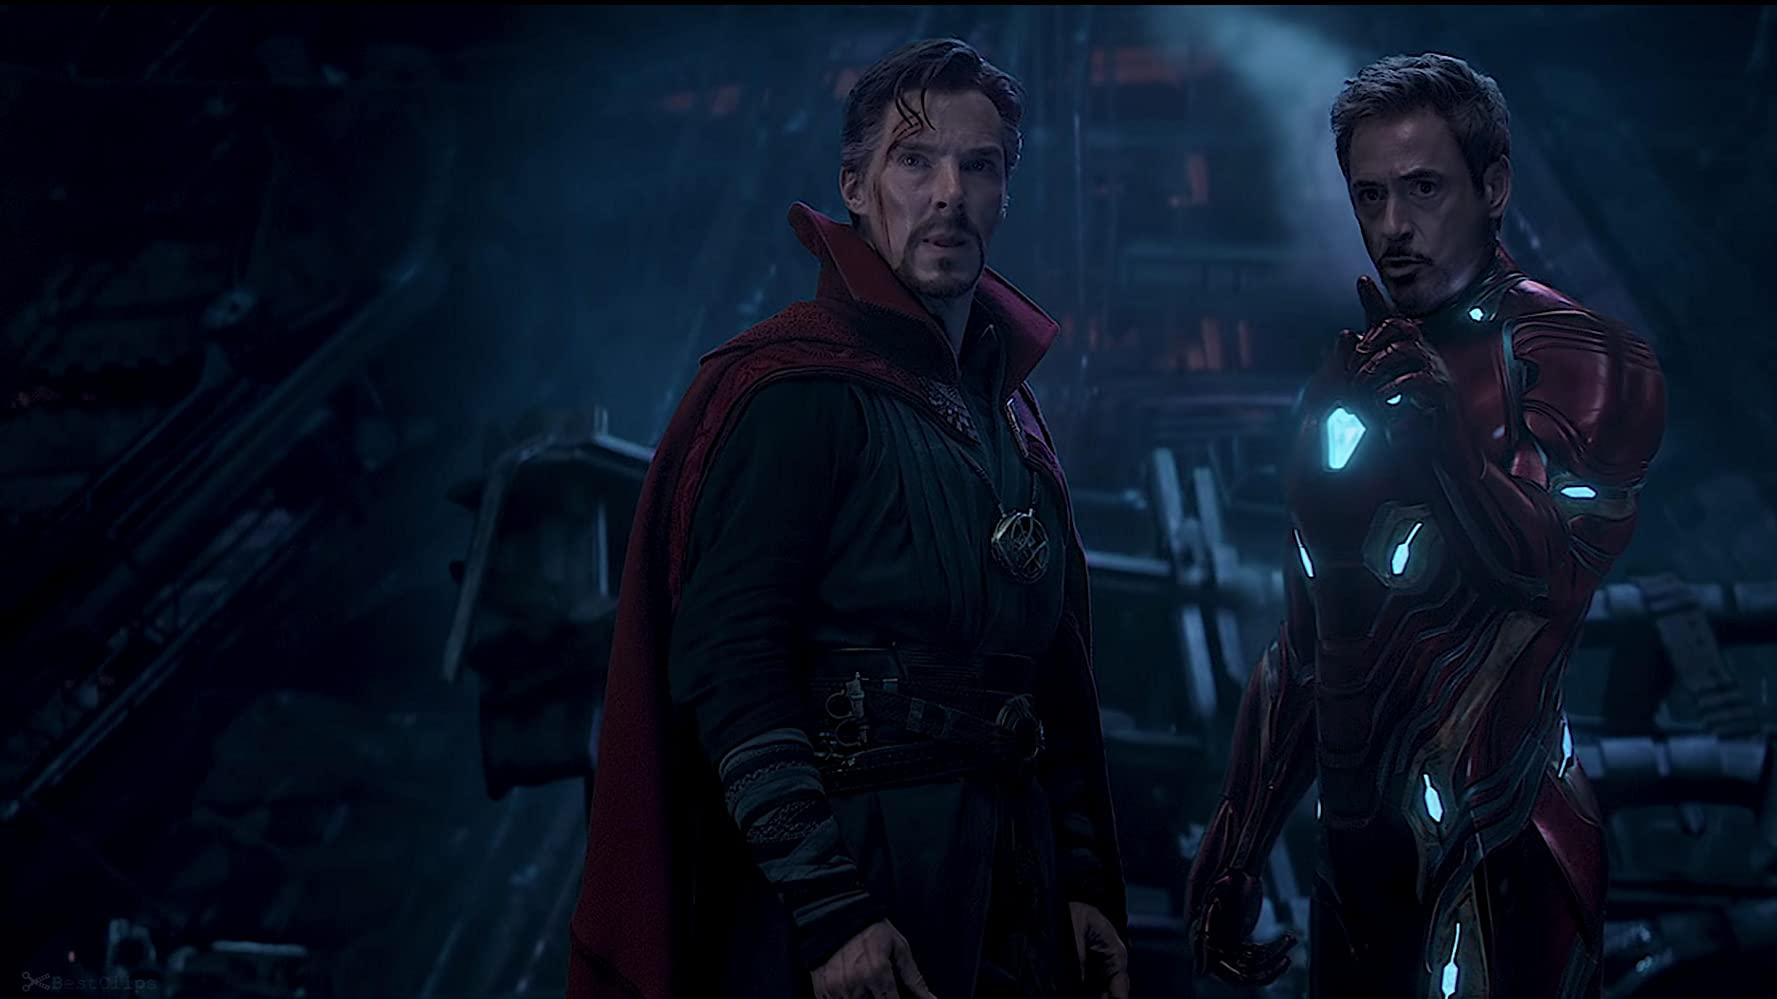 Robert Downey Jr. and Benedict Cumberbatch in Avengers: Infinity War (2018)